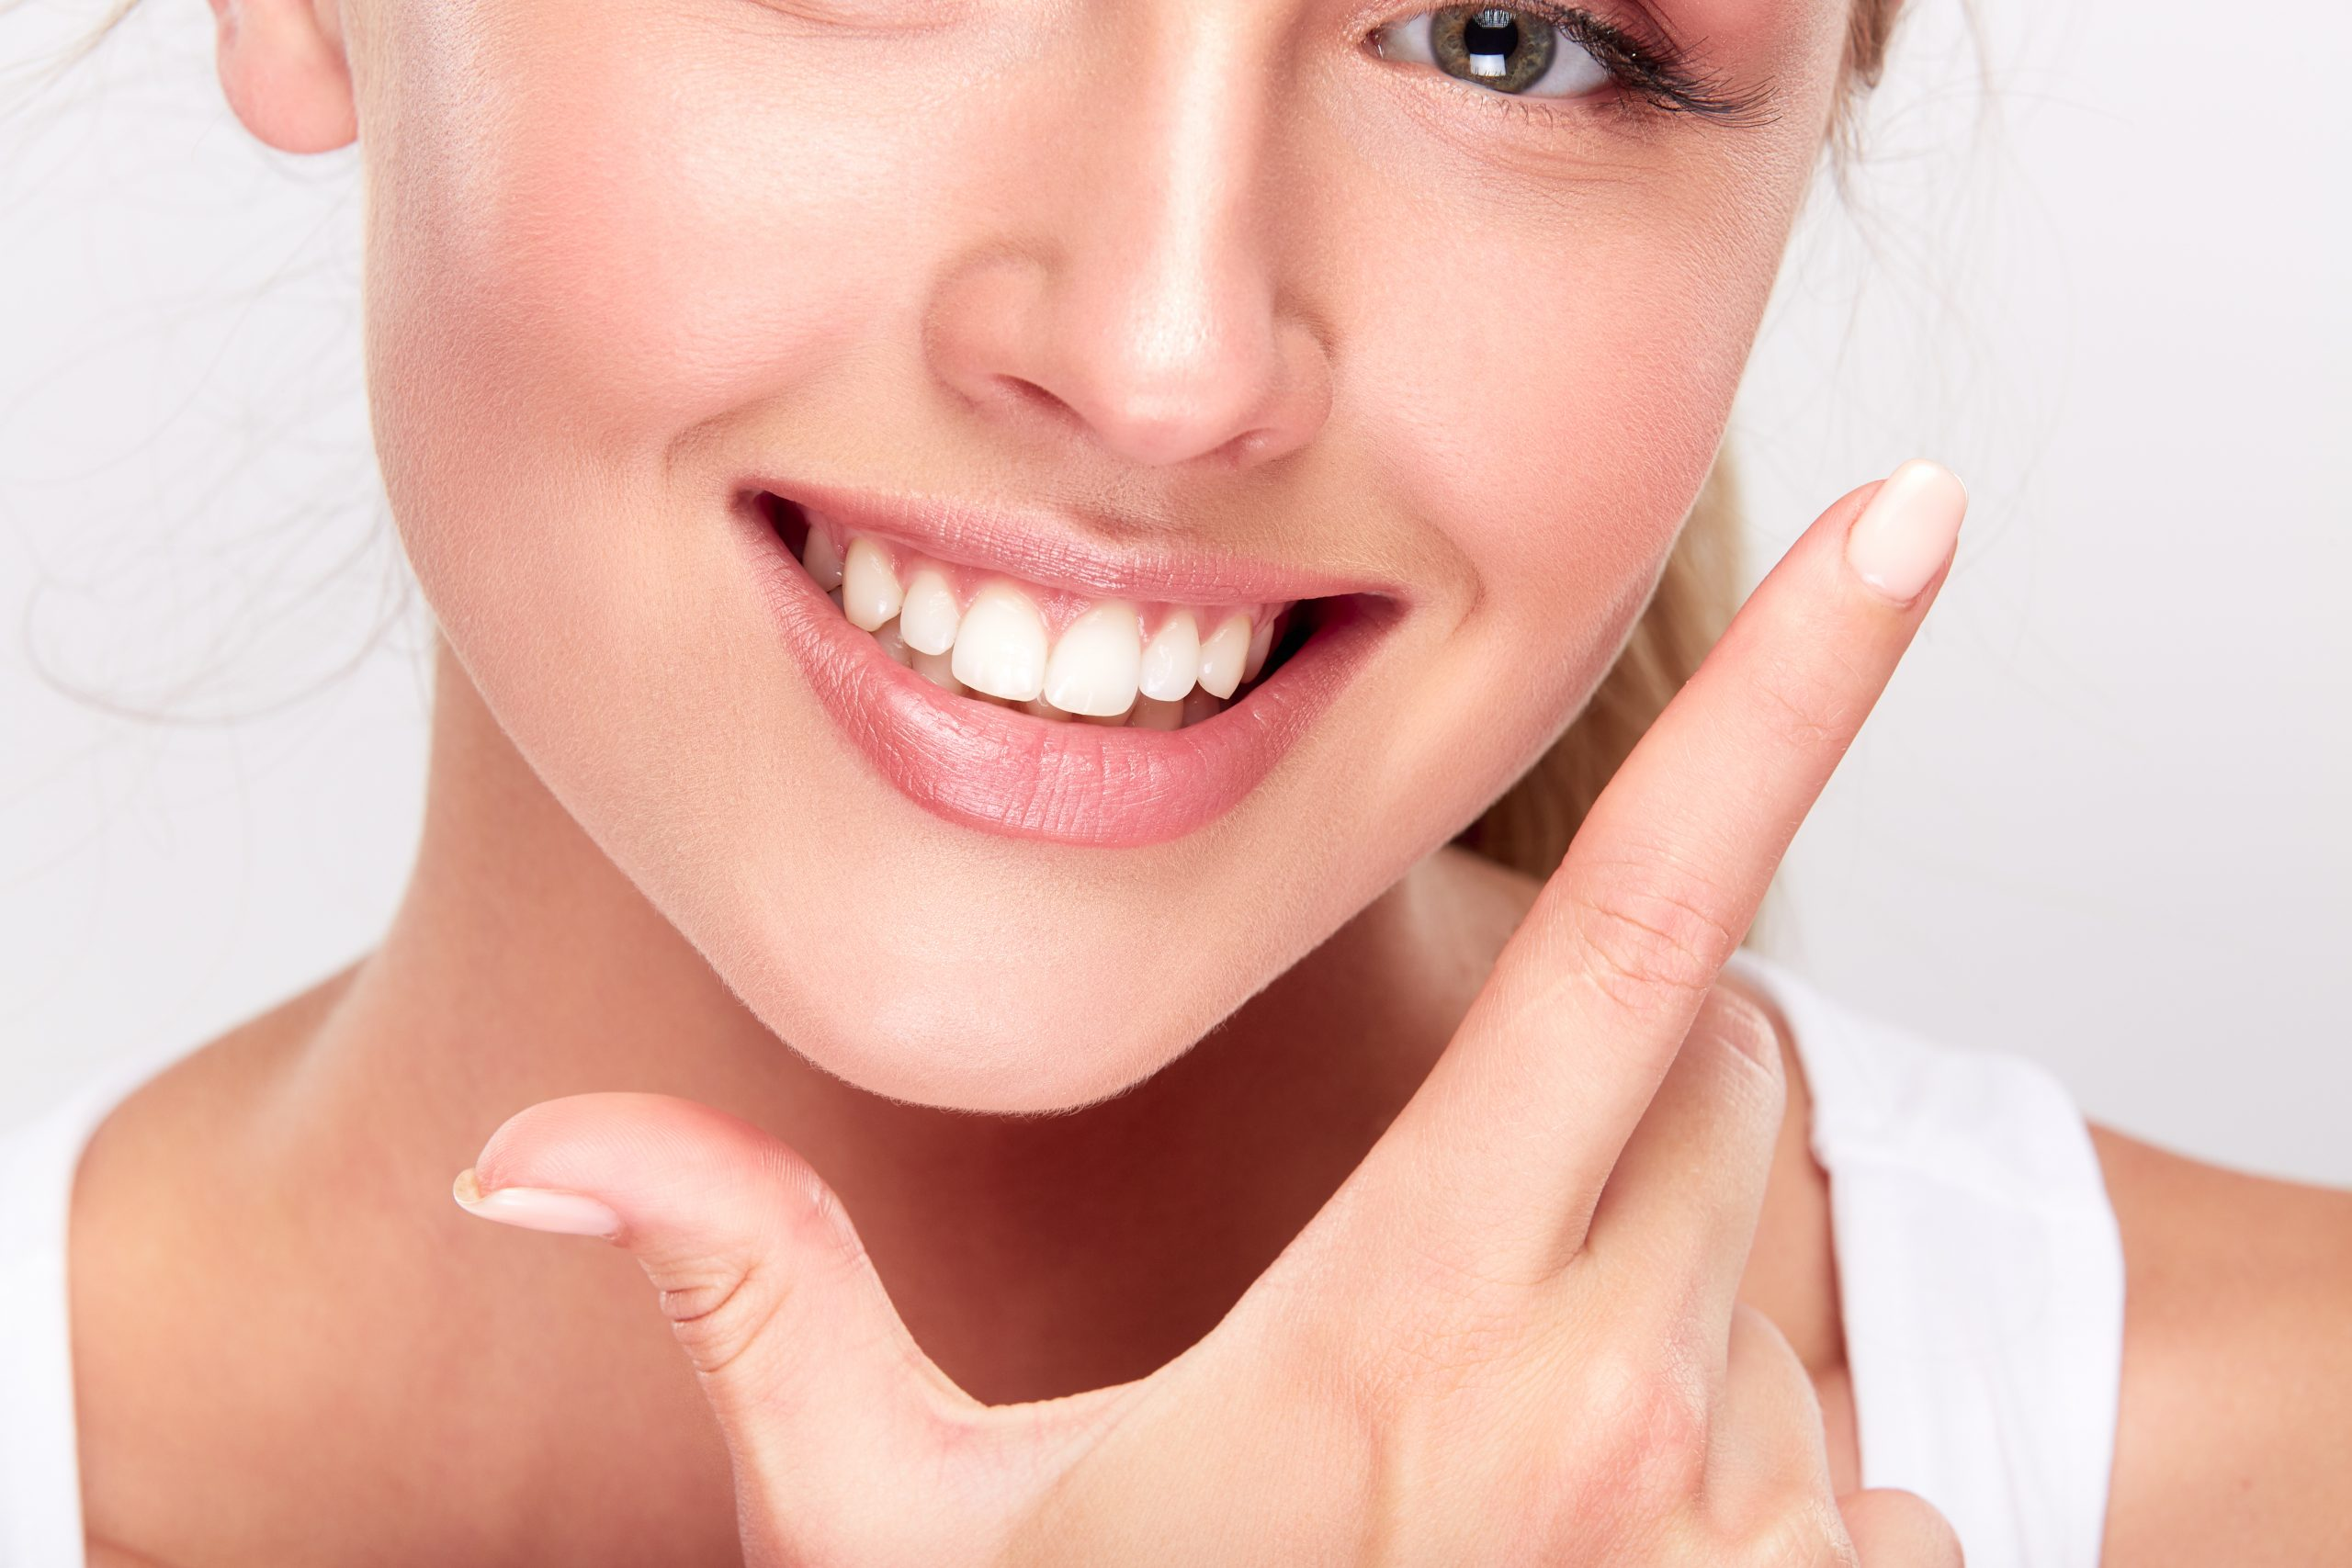 Gummy Smile Makeover - Dental Health Check, Gum Sculpting, Tooth Contouring & Whitening